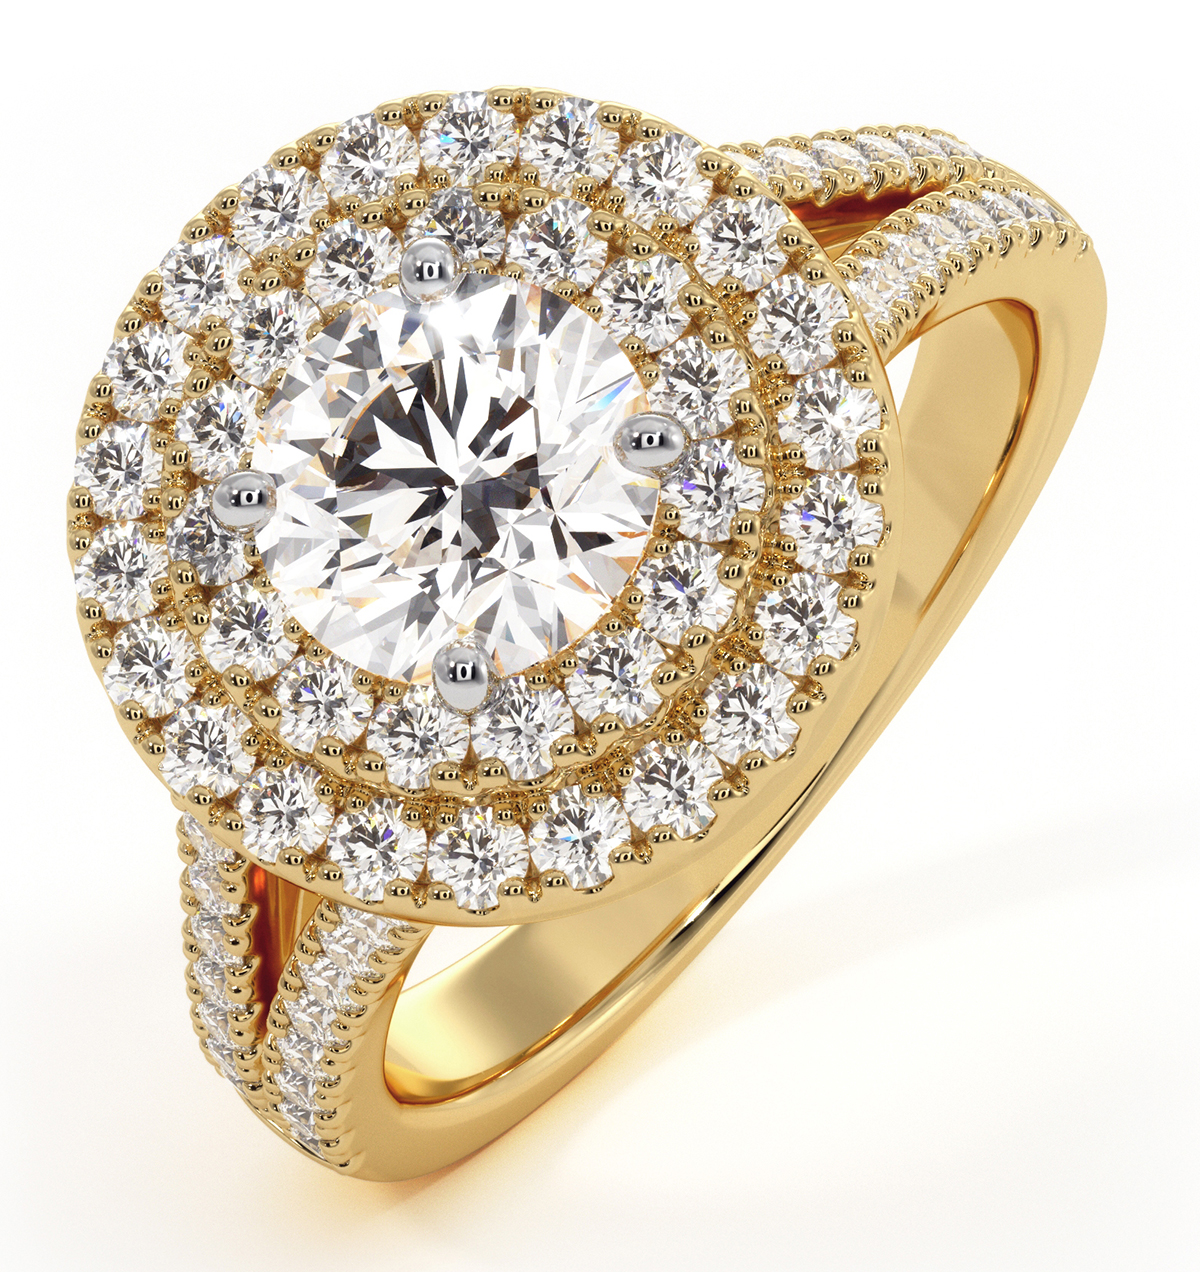 Camilla GIA Diamond Halo Engagement Ring in 18K Gold 1.85ct G/VS2 - image 1